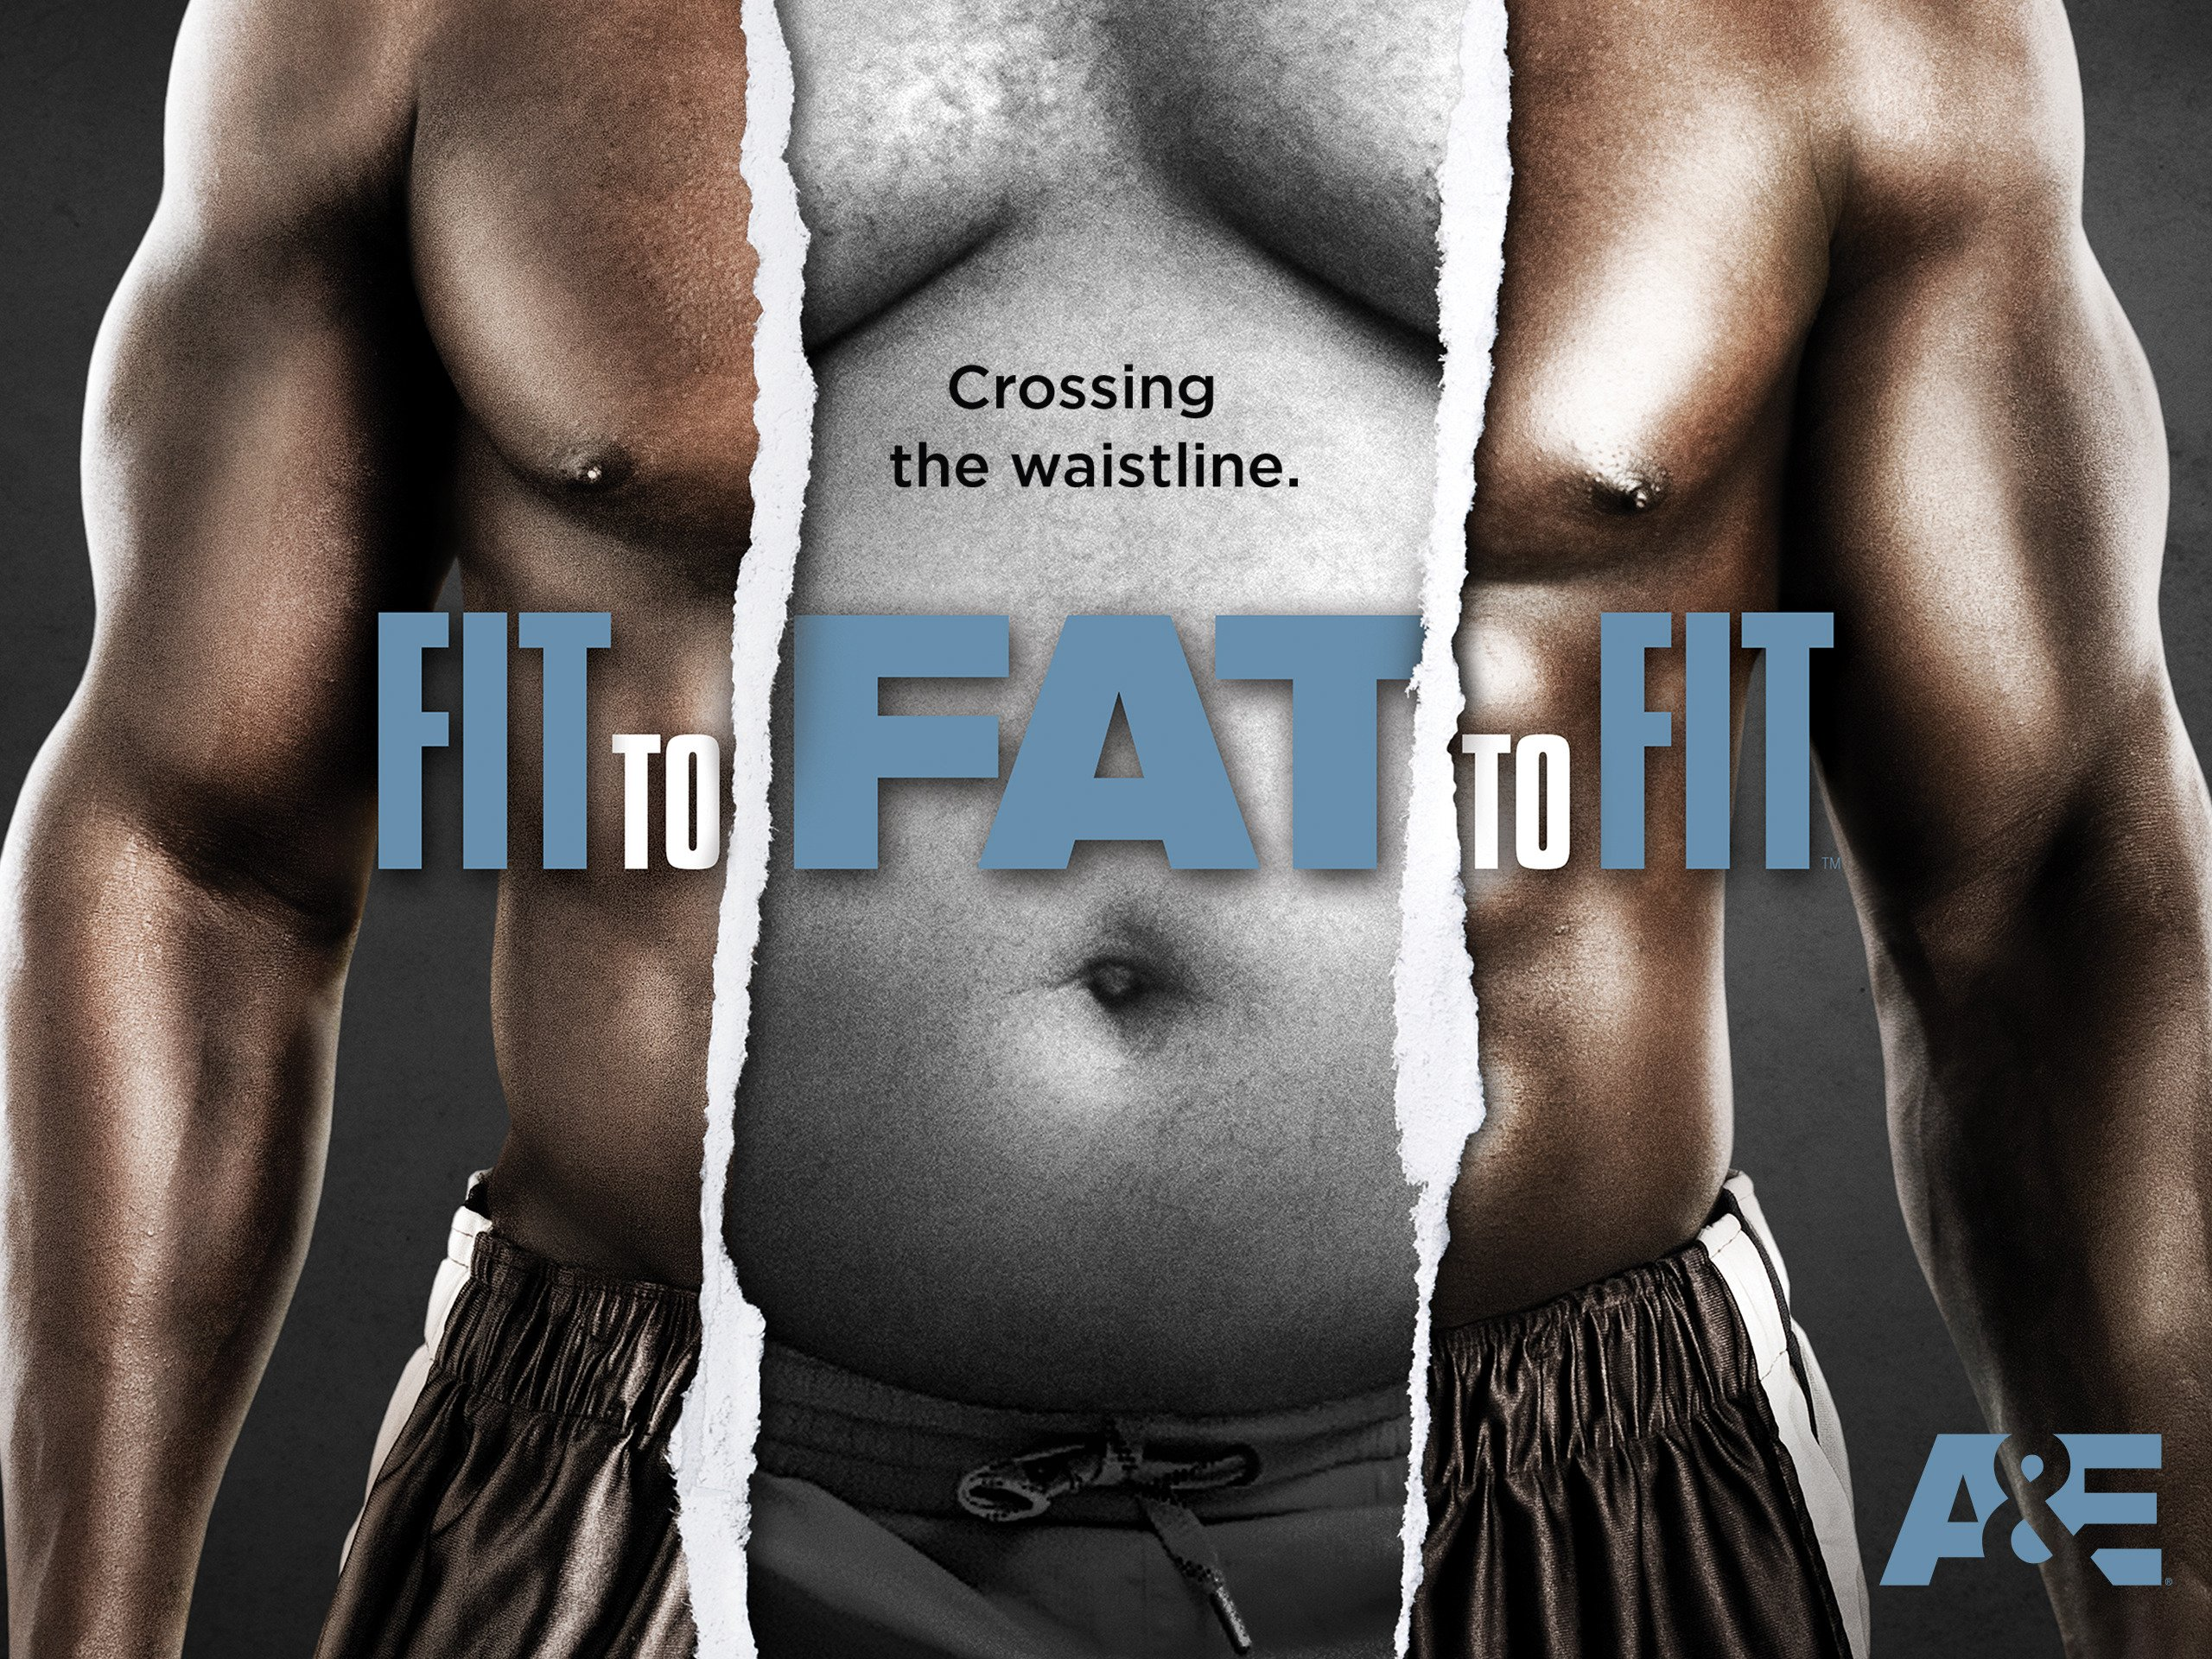 Watch Fit to Fat to Fit Season 1 | Prime Video